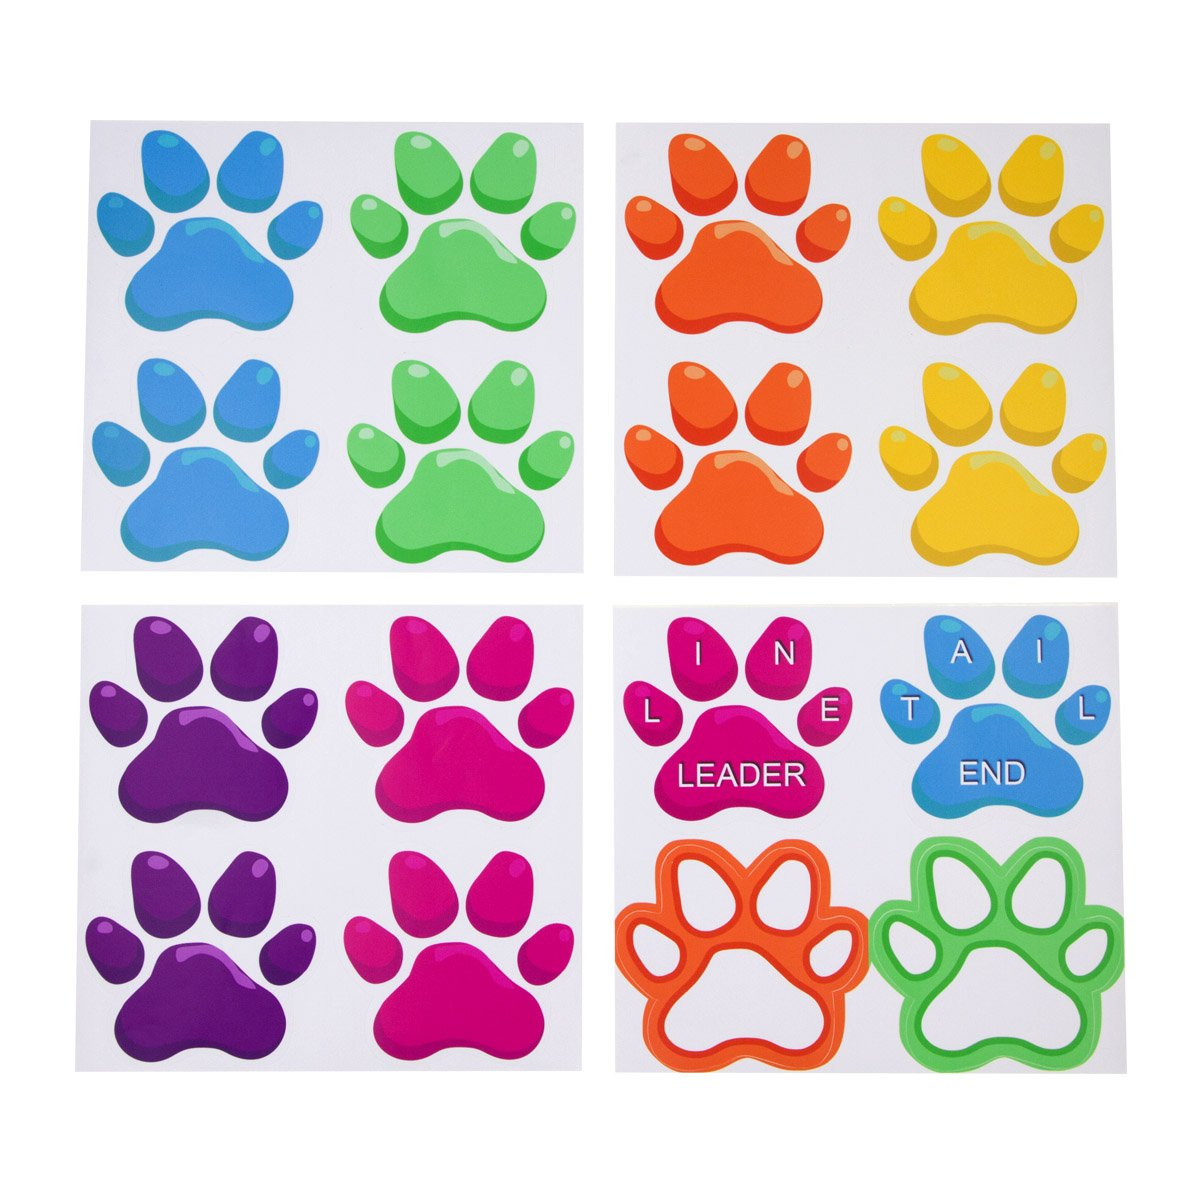 Paw Shaped Prints Floor Decals Stickers for Classroom Home Party Decoration